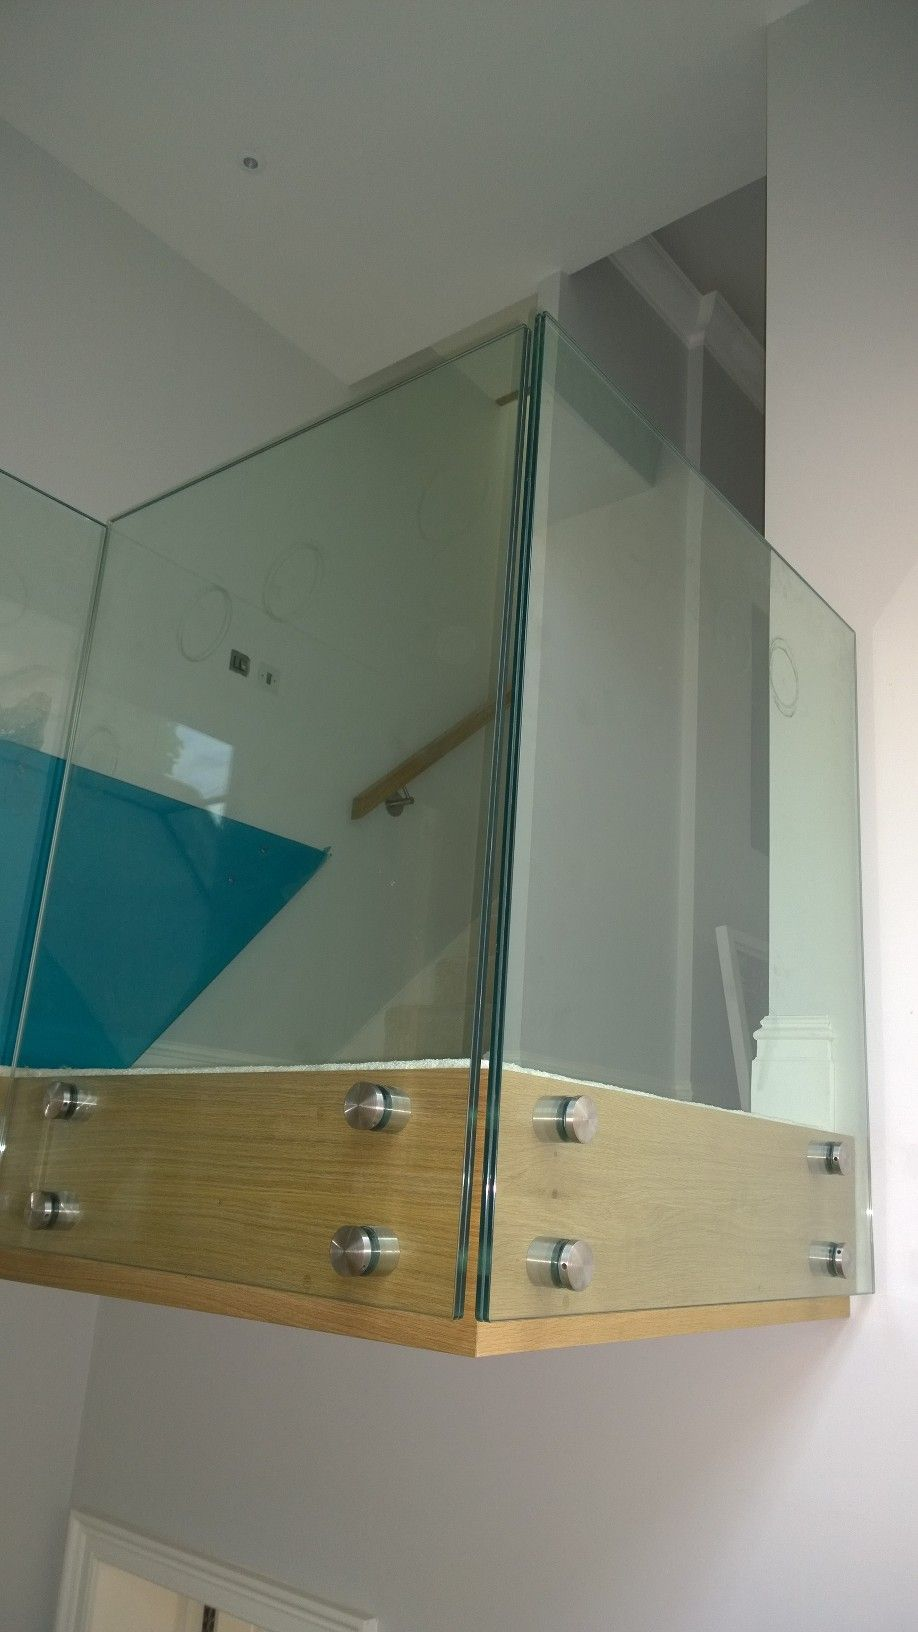 frameless design patch fixing glass landing balustrade. Black Bedroom Furniture Sets. Home Design Ideas